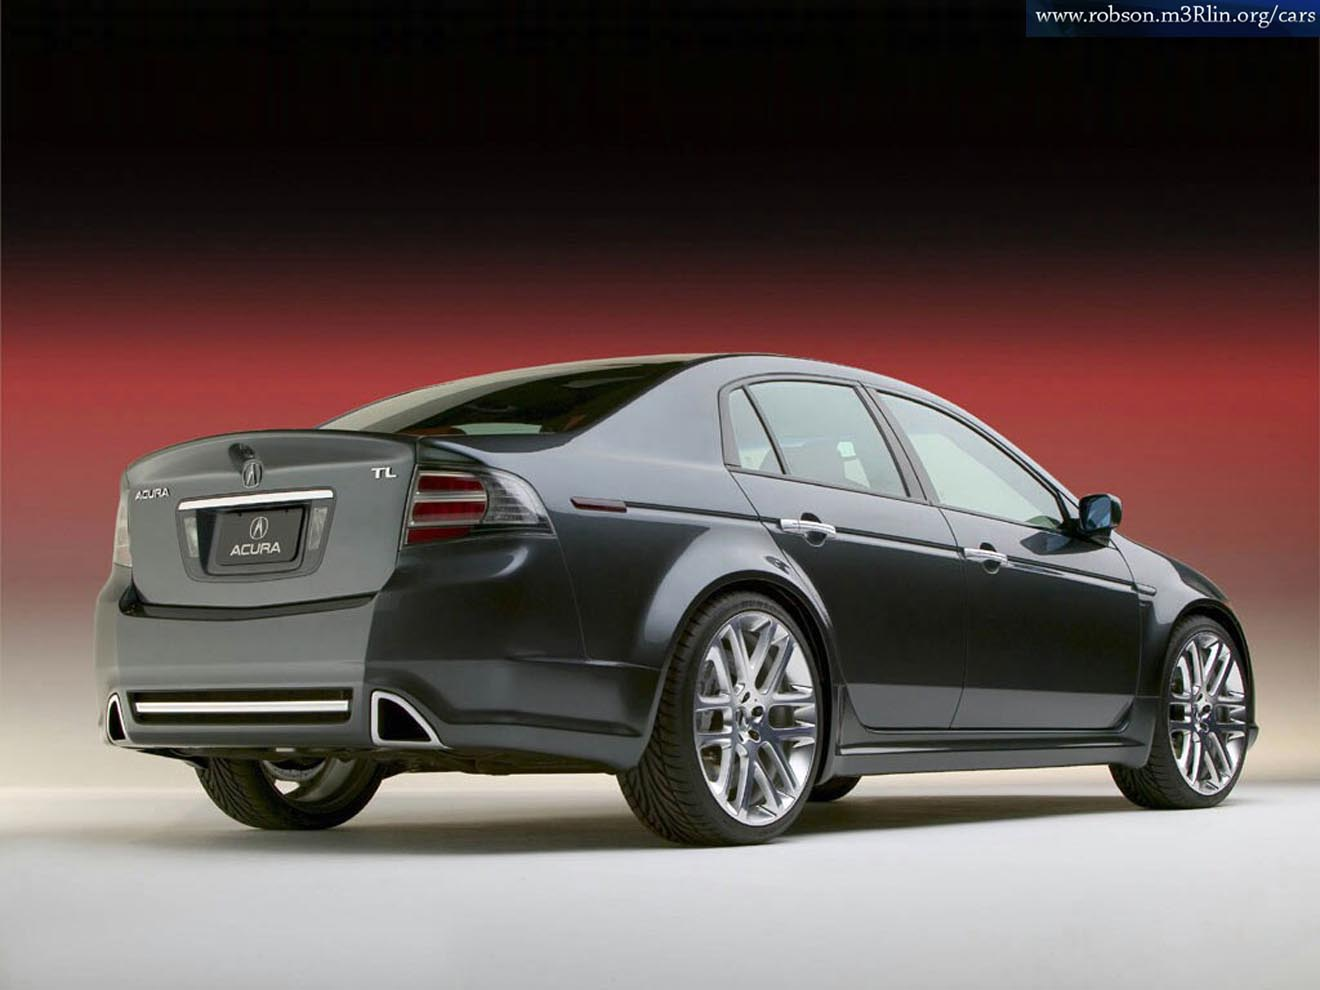 Acura TL 613 Background For Free